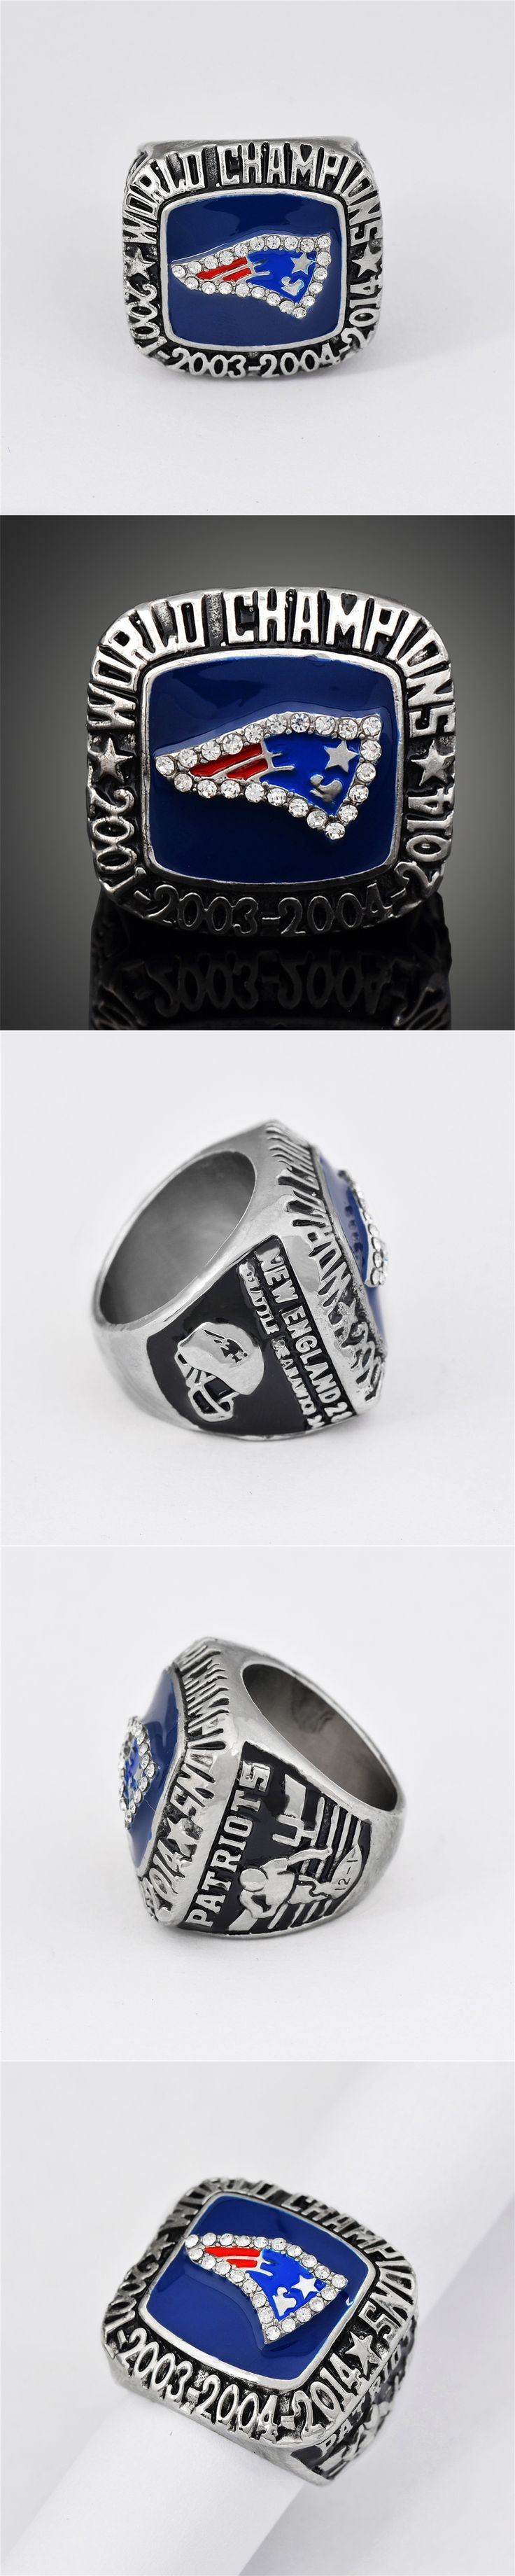 2014 New England Patriots Super Bowl XLIX Fans Ring Excellent Replica Sport Ring For Fans Collection Gift Men Jewelry J02120